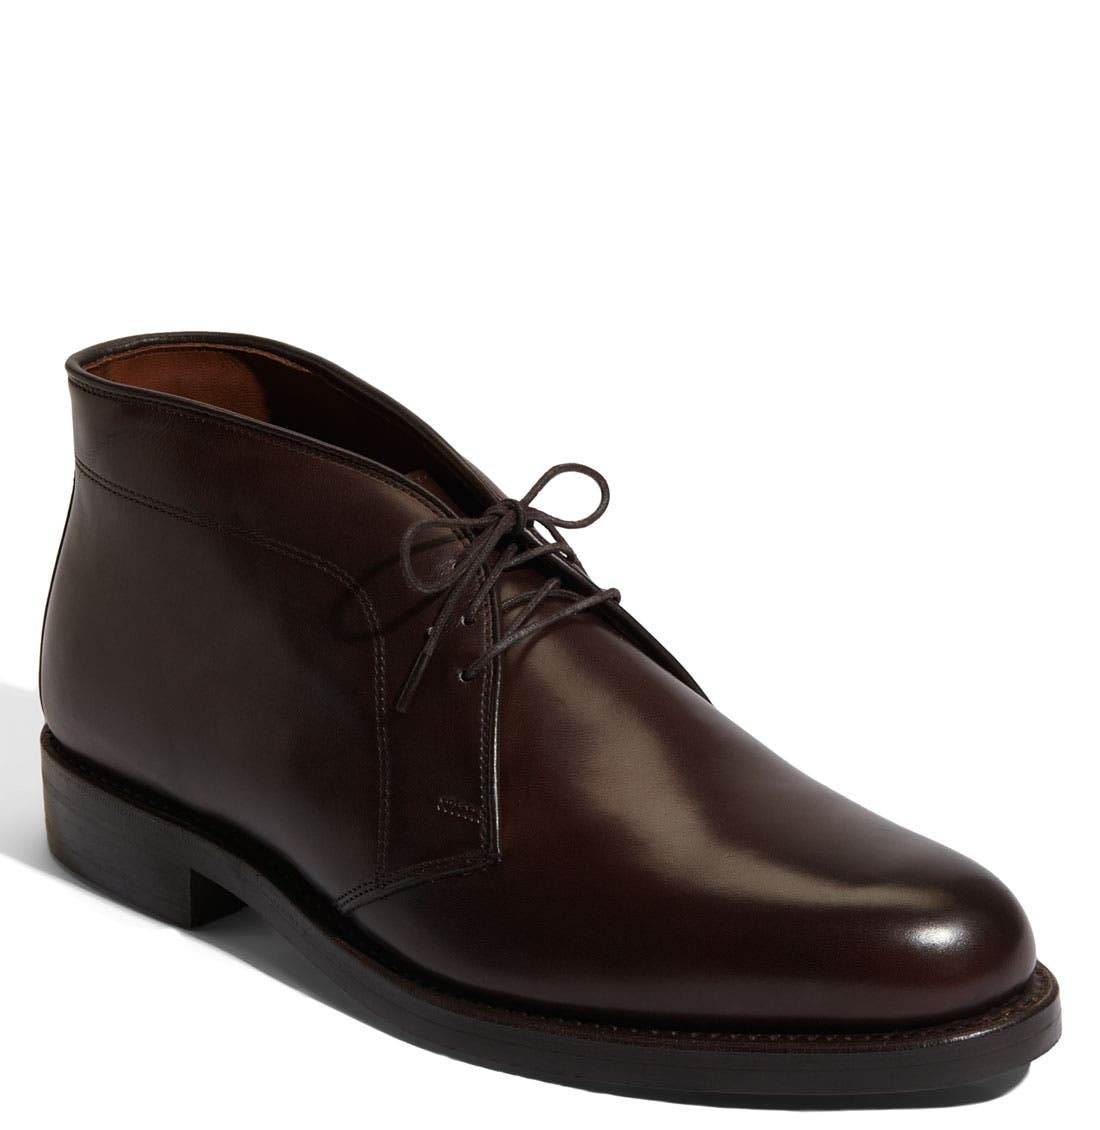 Alternate Image 1 Selected - Allen Edmonds 'Malvern' Chukka Boot (Online Only)